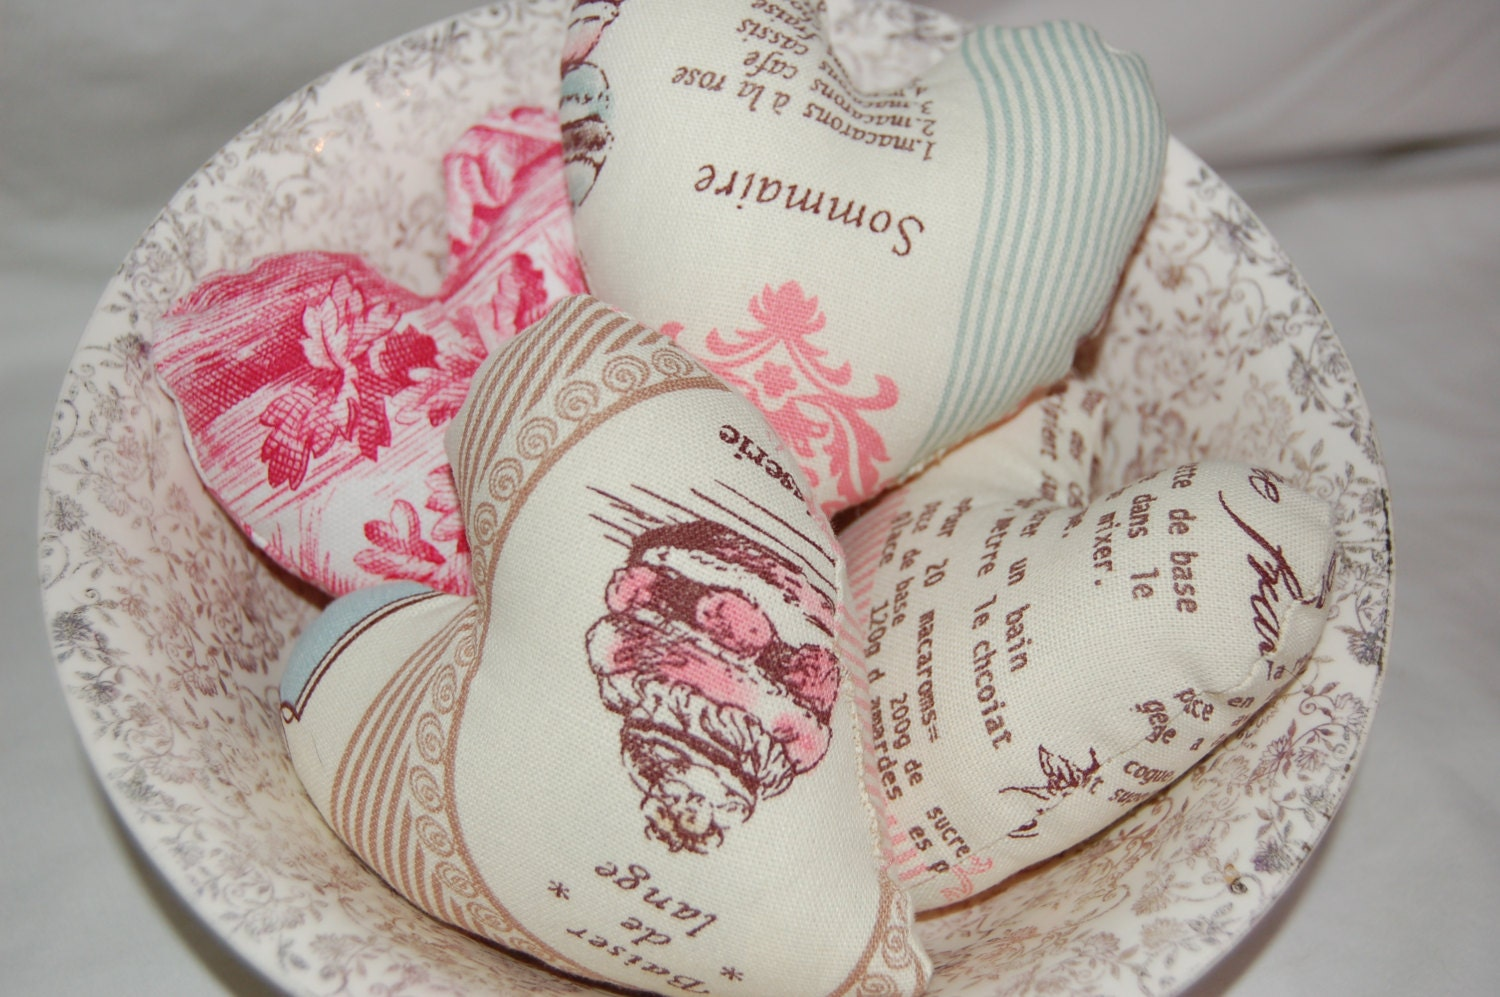 3 French Wedding HEARTS Bowl Filler Decoration - Shabby Chic Vintage Style - made in France - mountainlodge